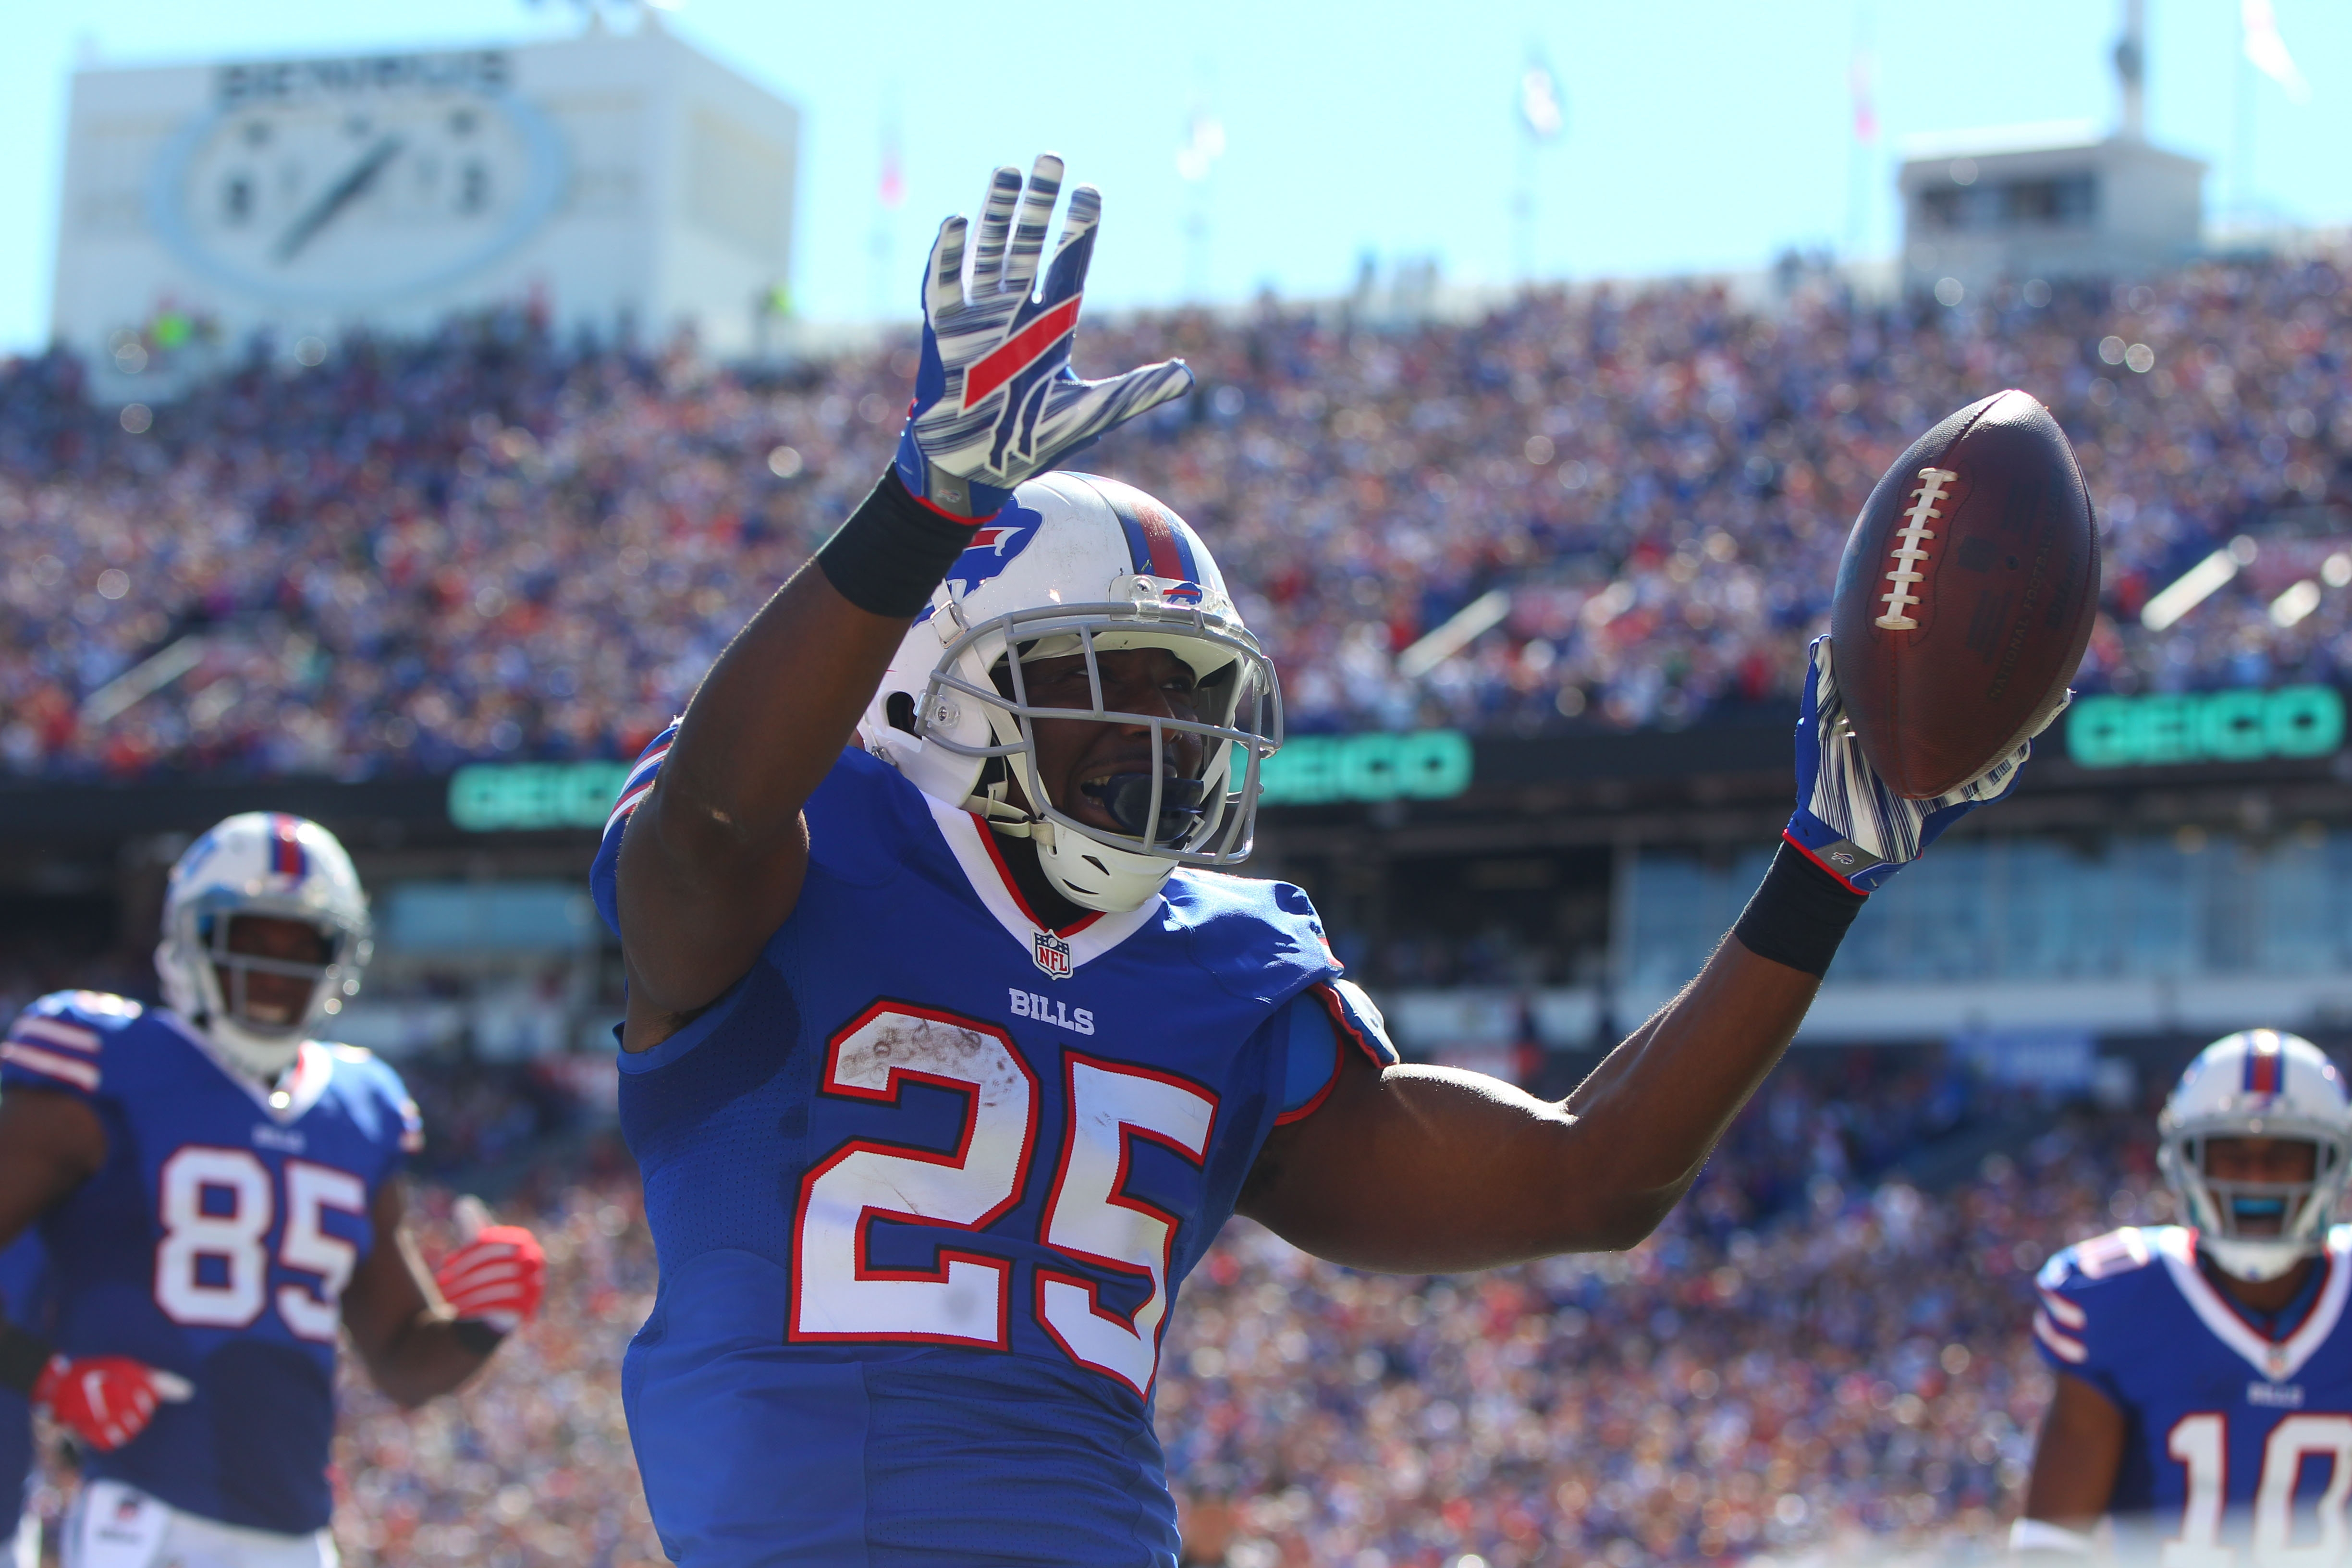 Buffalo Bills running back LeSean McCoy celebrates his touchdown against the Arizona Cardinals during the first quarter at New Era Field in Orchard Park, Sunday, Sept. 25, 2016.  (Mark Mulville/Buffalo News)